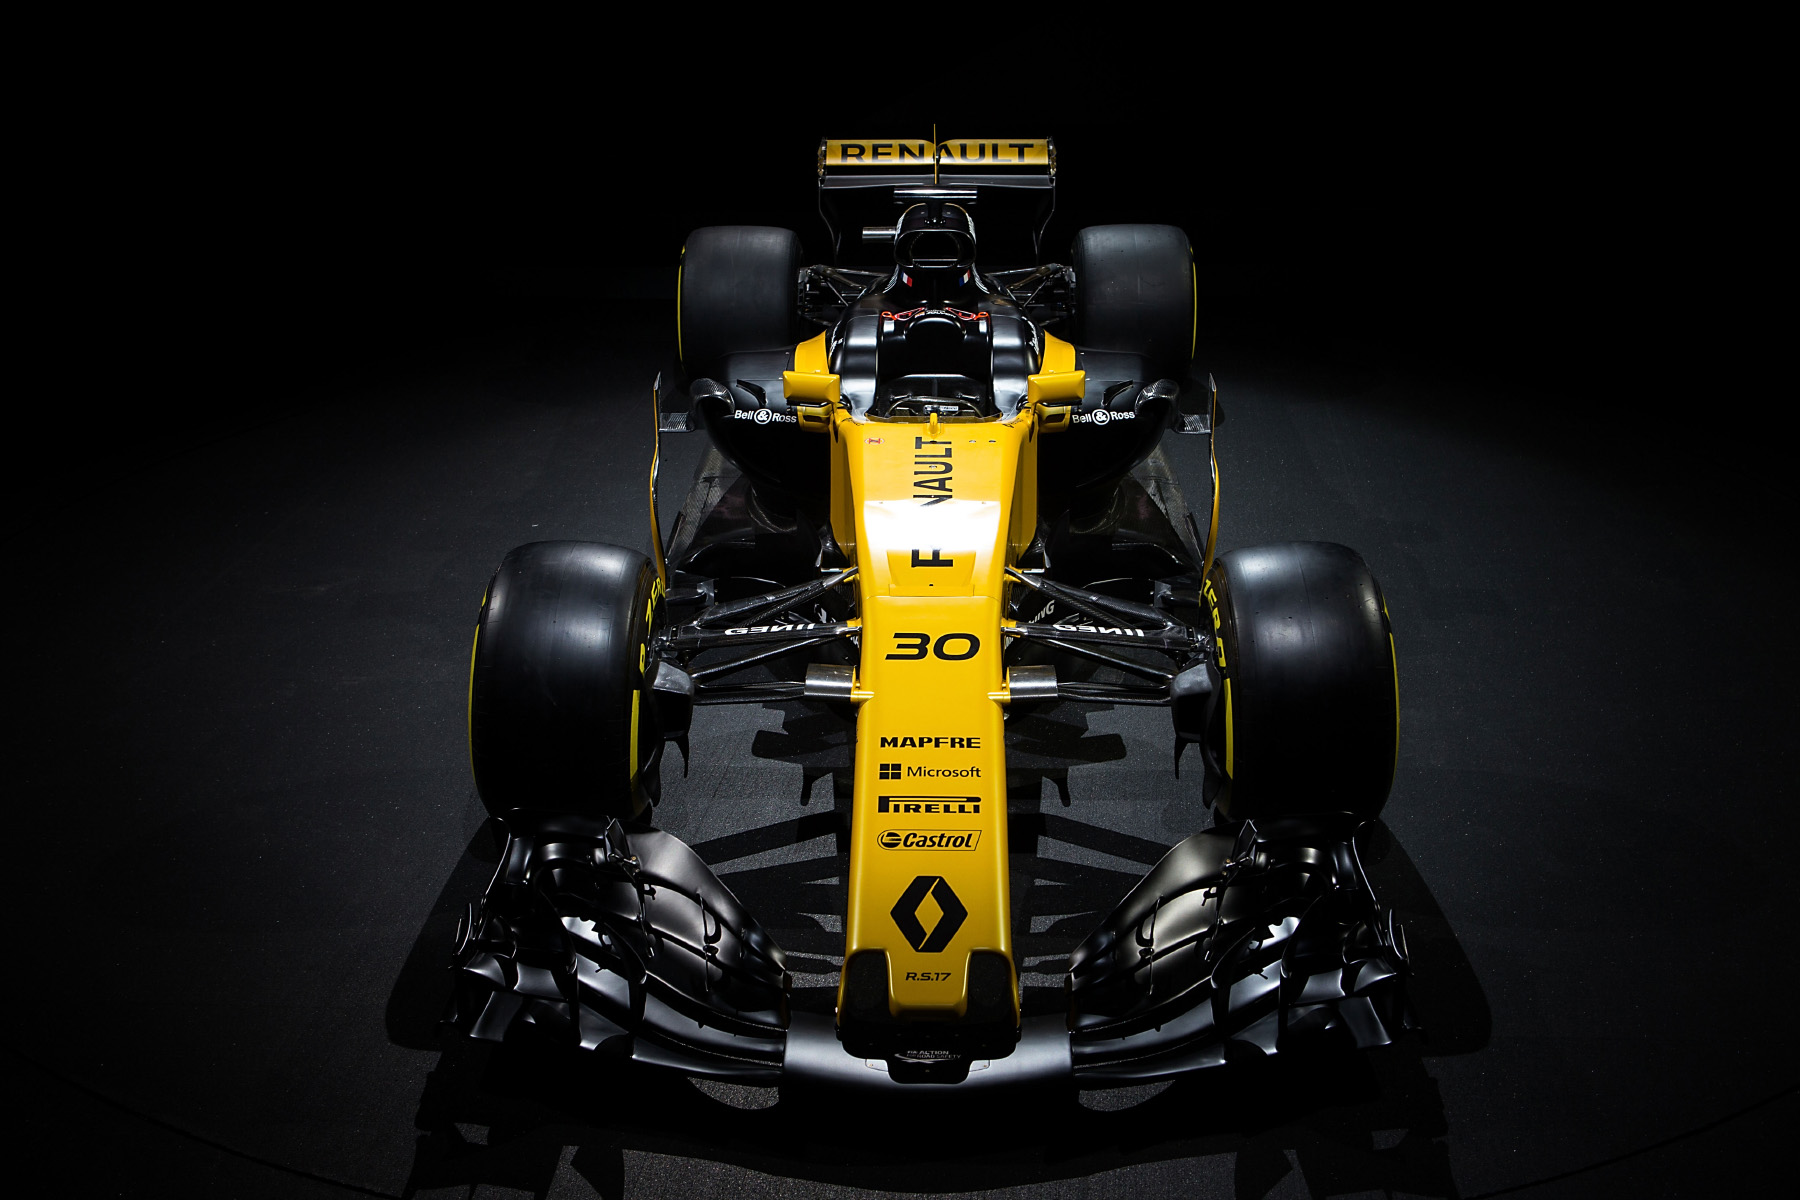 Renault's 2017 F1 car, the RS17.